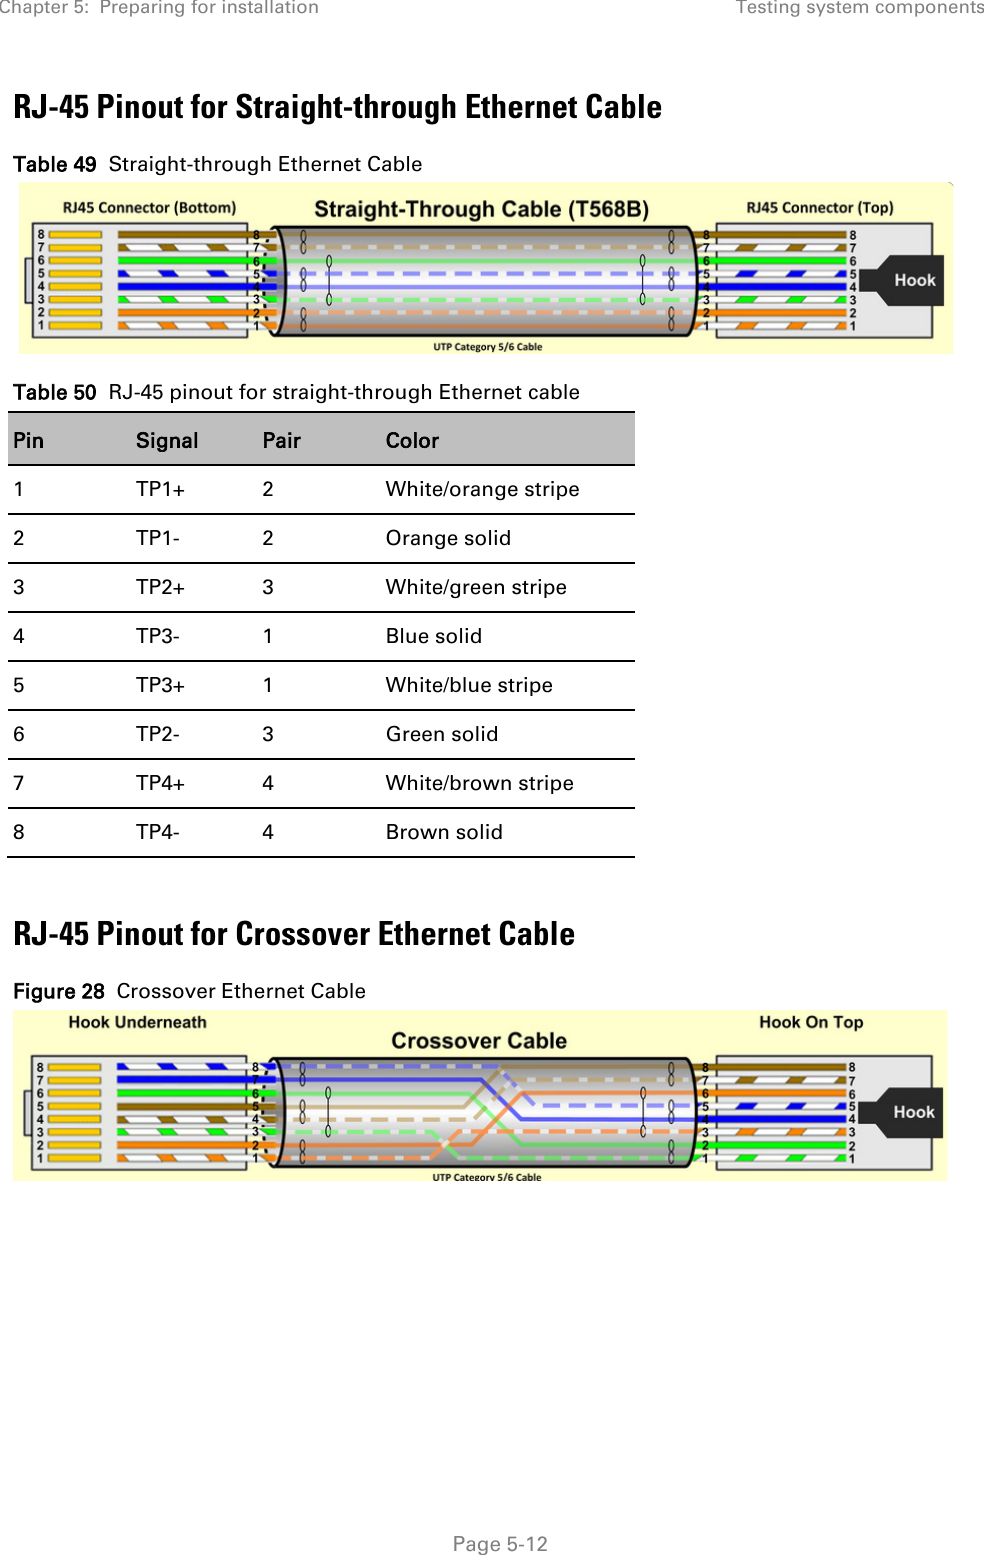 Cambium Networks 50450i Wireless Ethernet Bridge Dual Channel Ofdm Straight Through Cable Chapter 5 Preparing For Installation Testing System Components Page 12 Rj 45